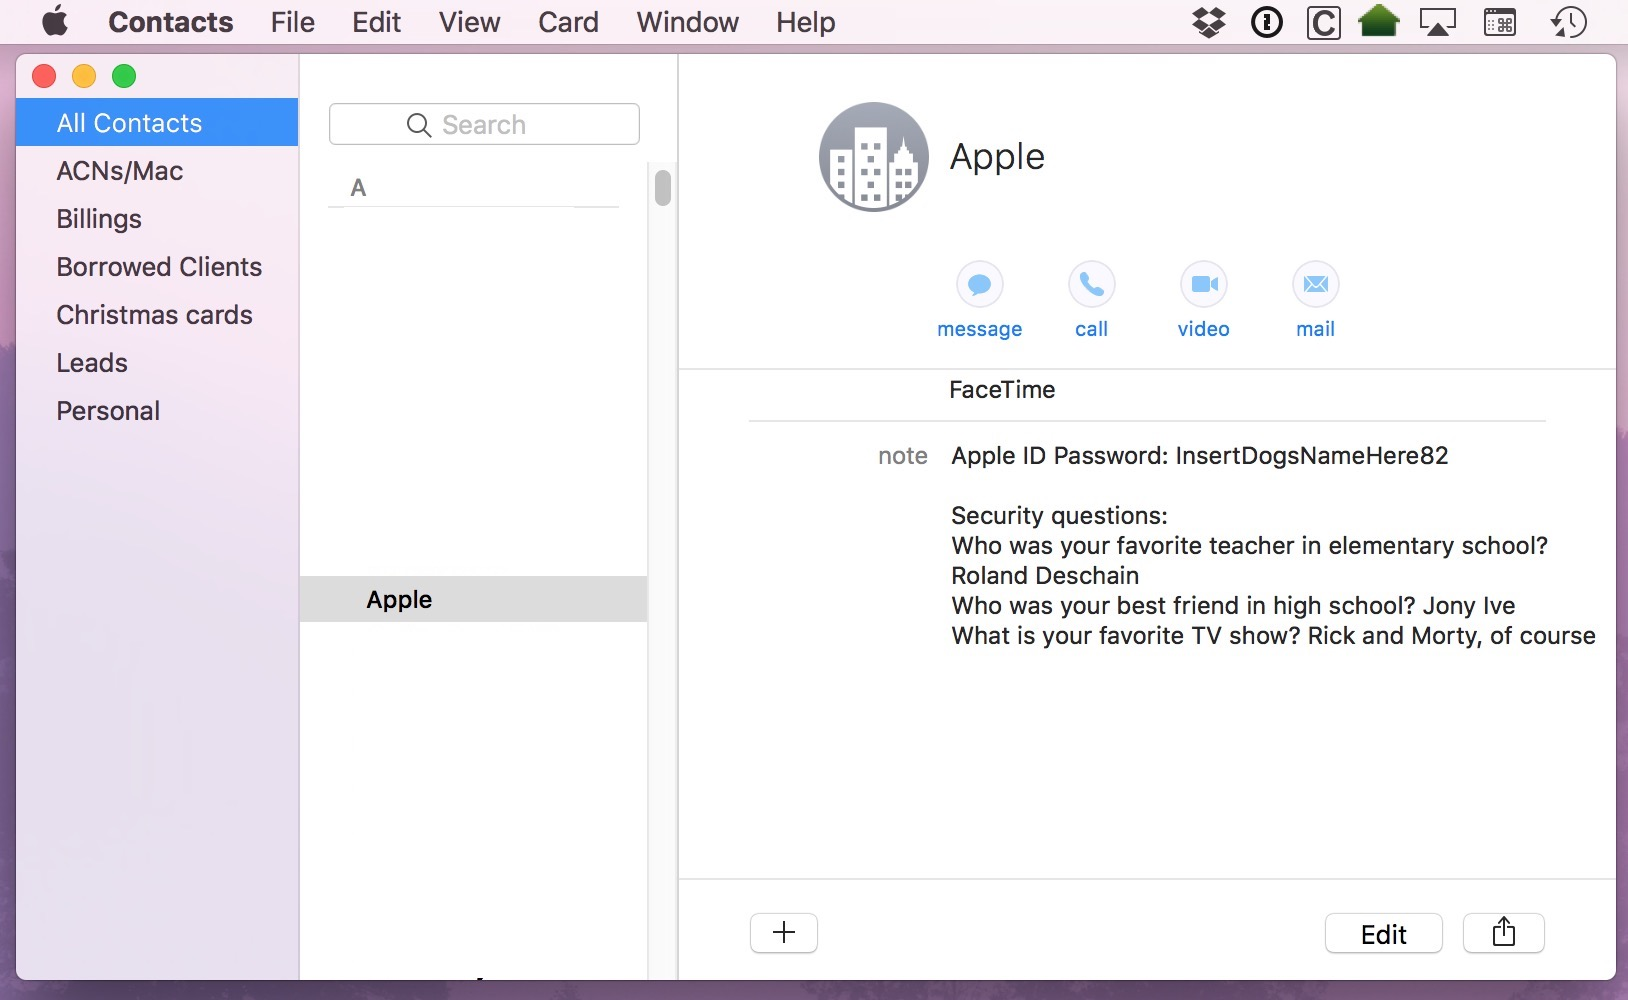 Contacts Window showing a notes in a contact entry that should be stores in a Keychain Access Secure Note